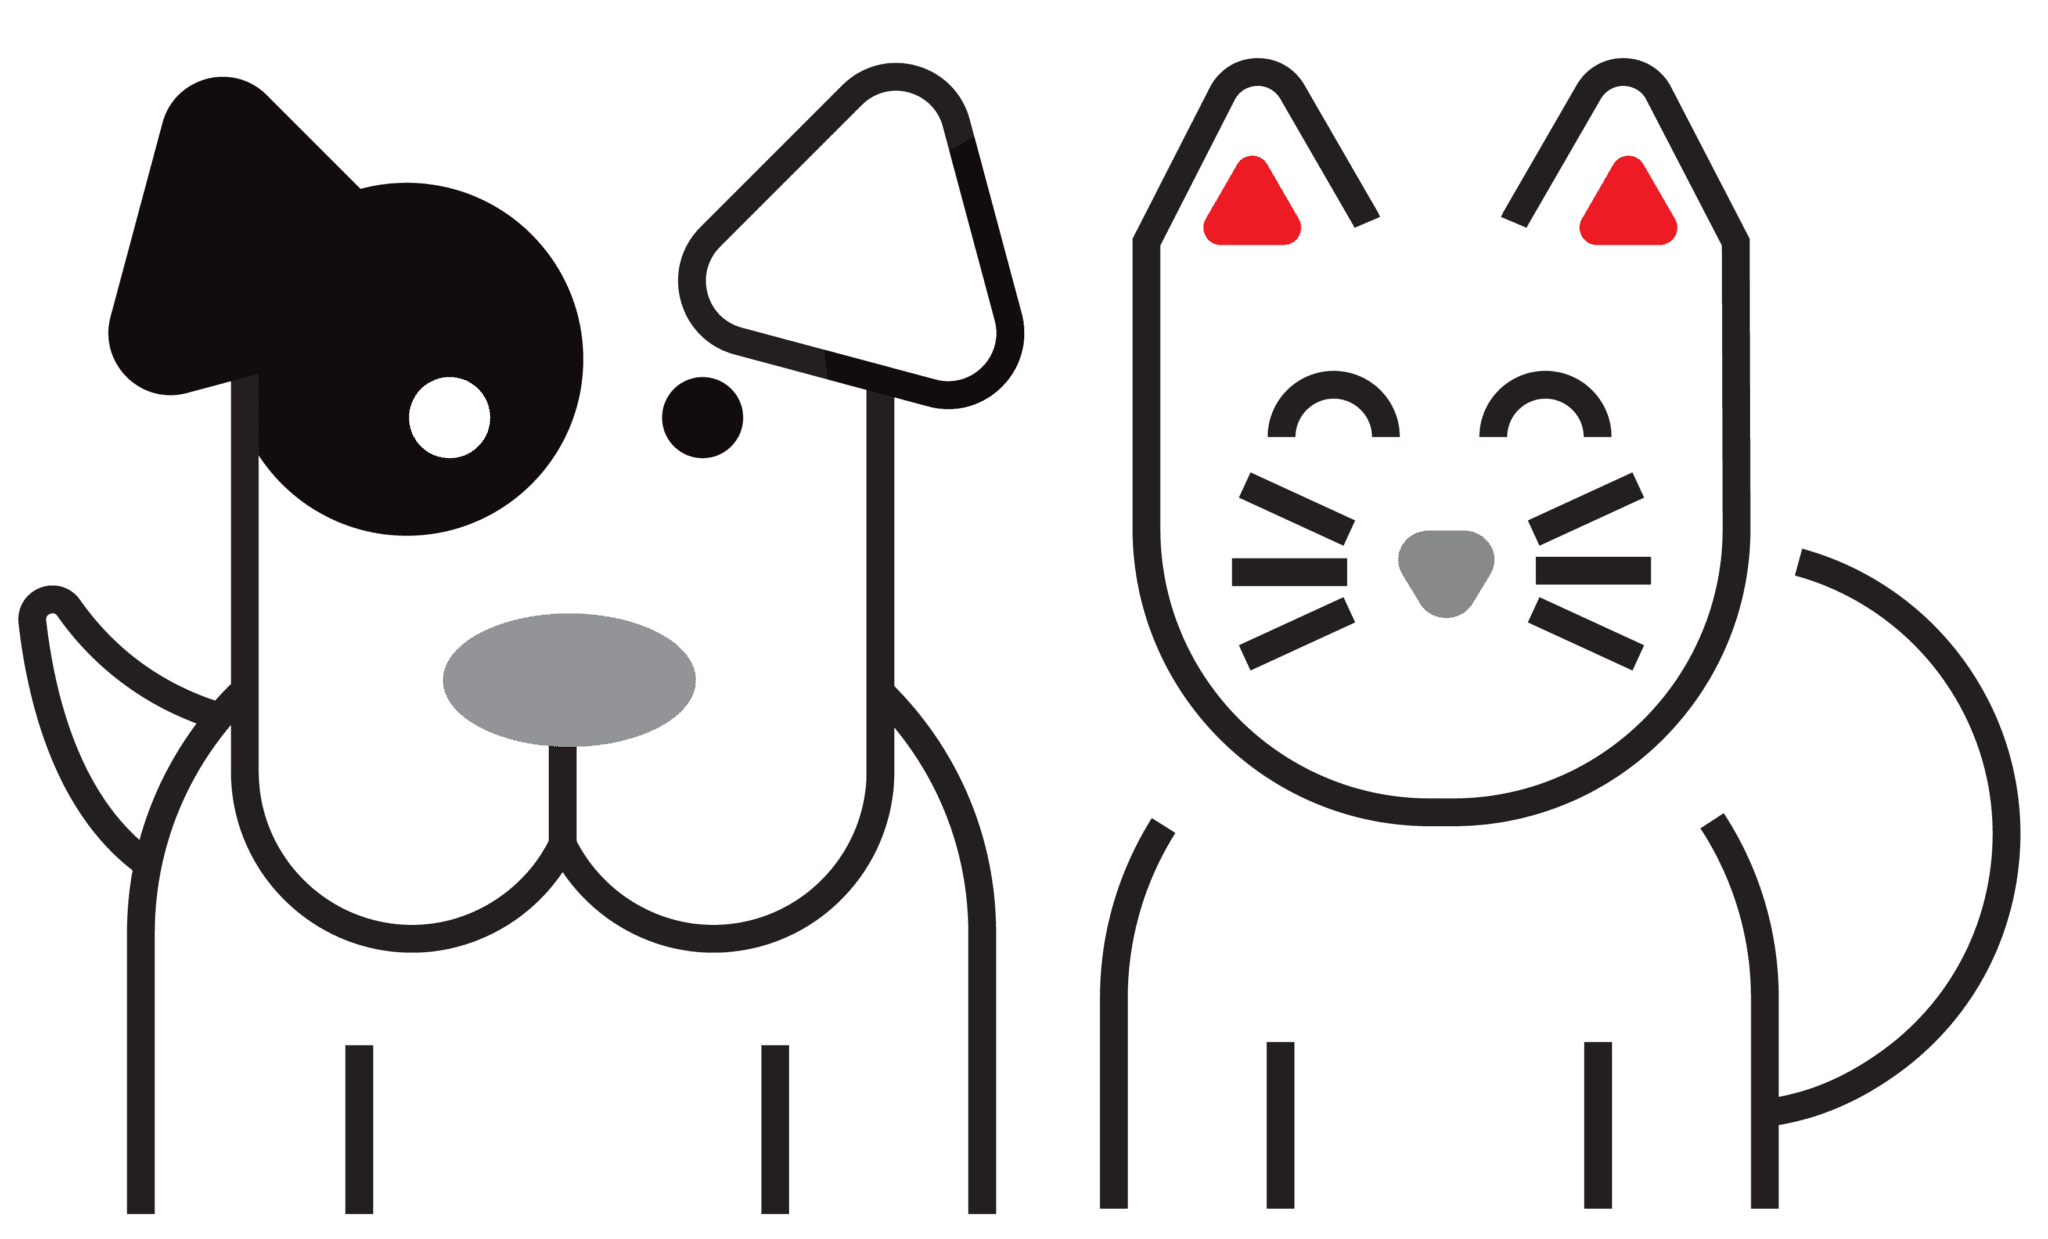 dog-cat-icon-01